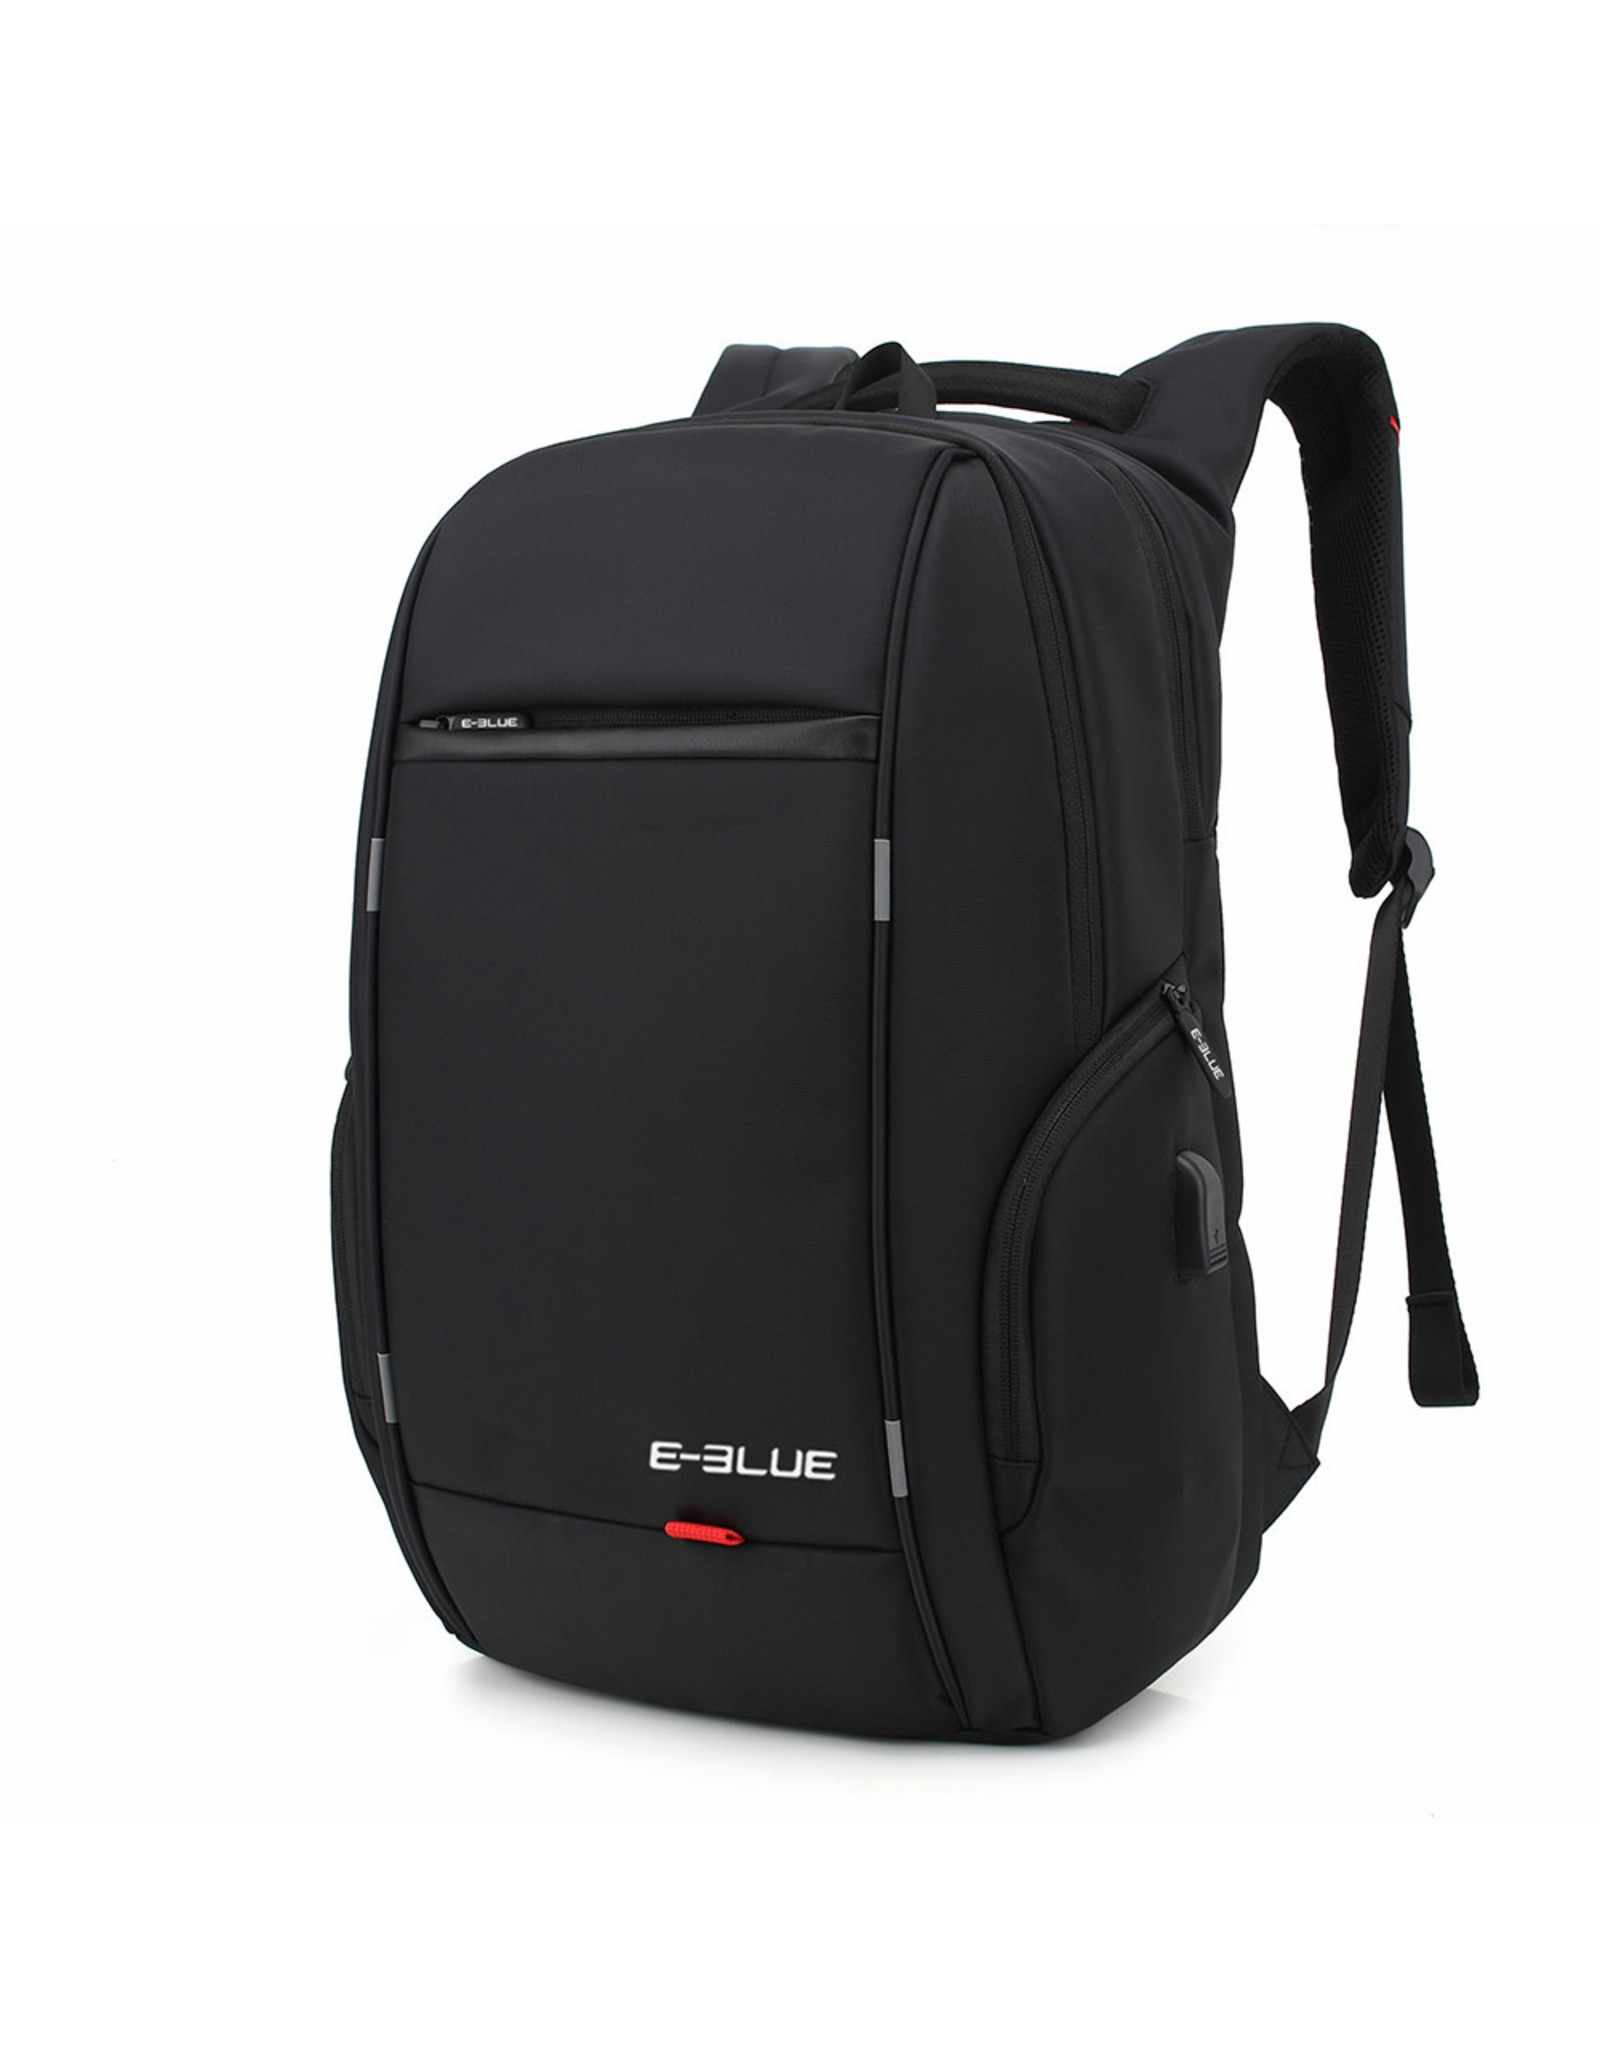 E-Blue E-Blue Tech Friendly Backpack - Black